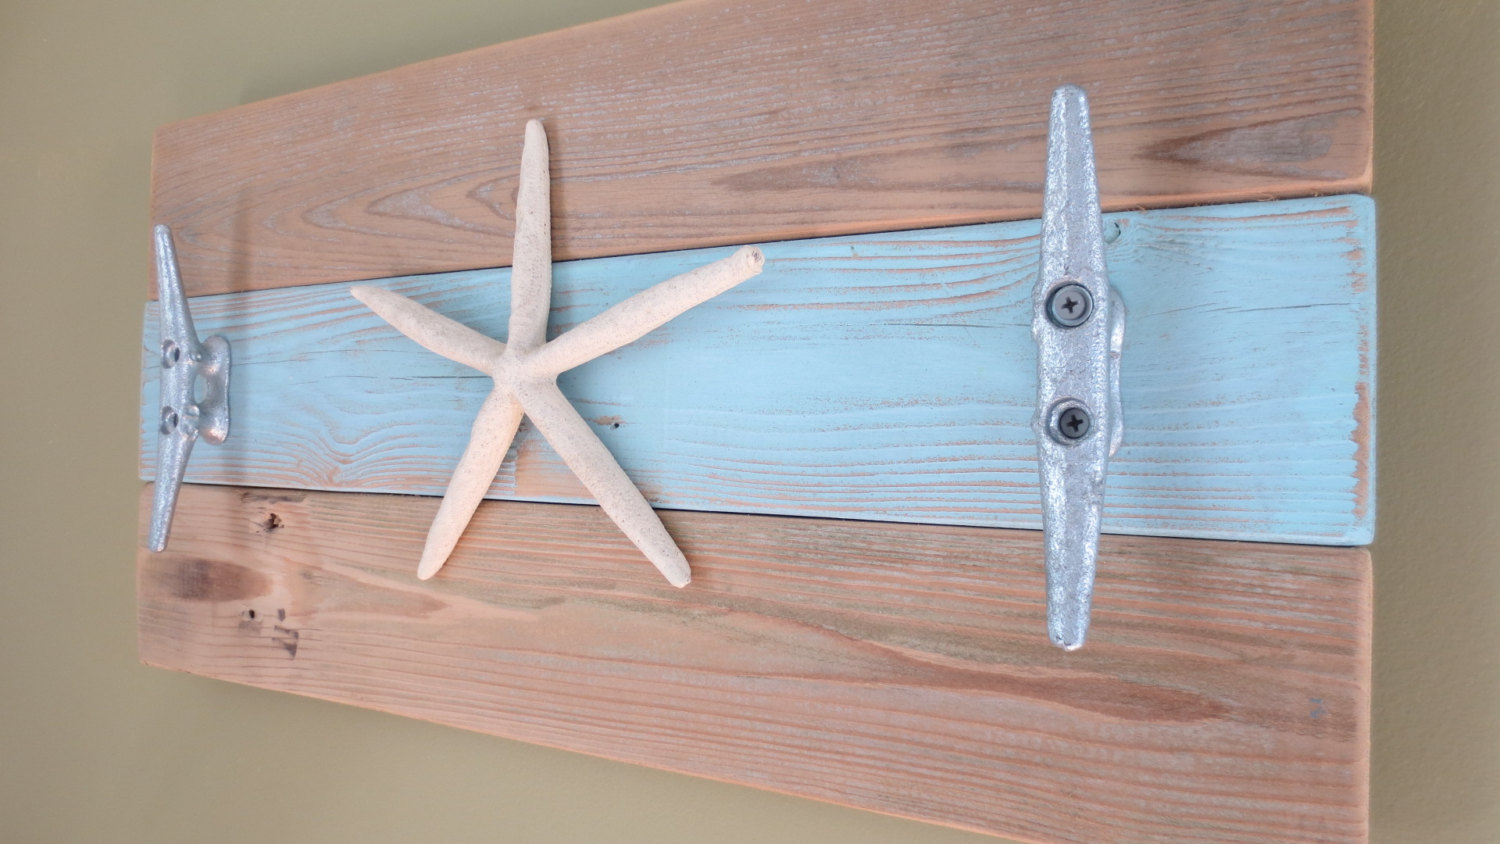 Brilliant Coat Hanger with Starfish Shaped Ornament and Coral Like Decorative Wall Hooks on Wooden Panel